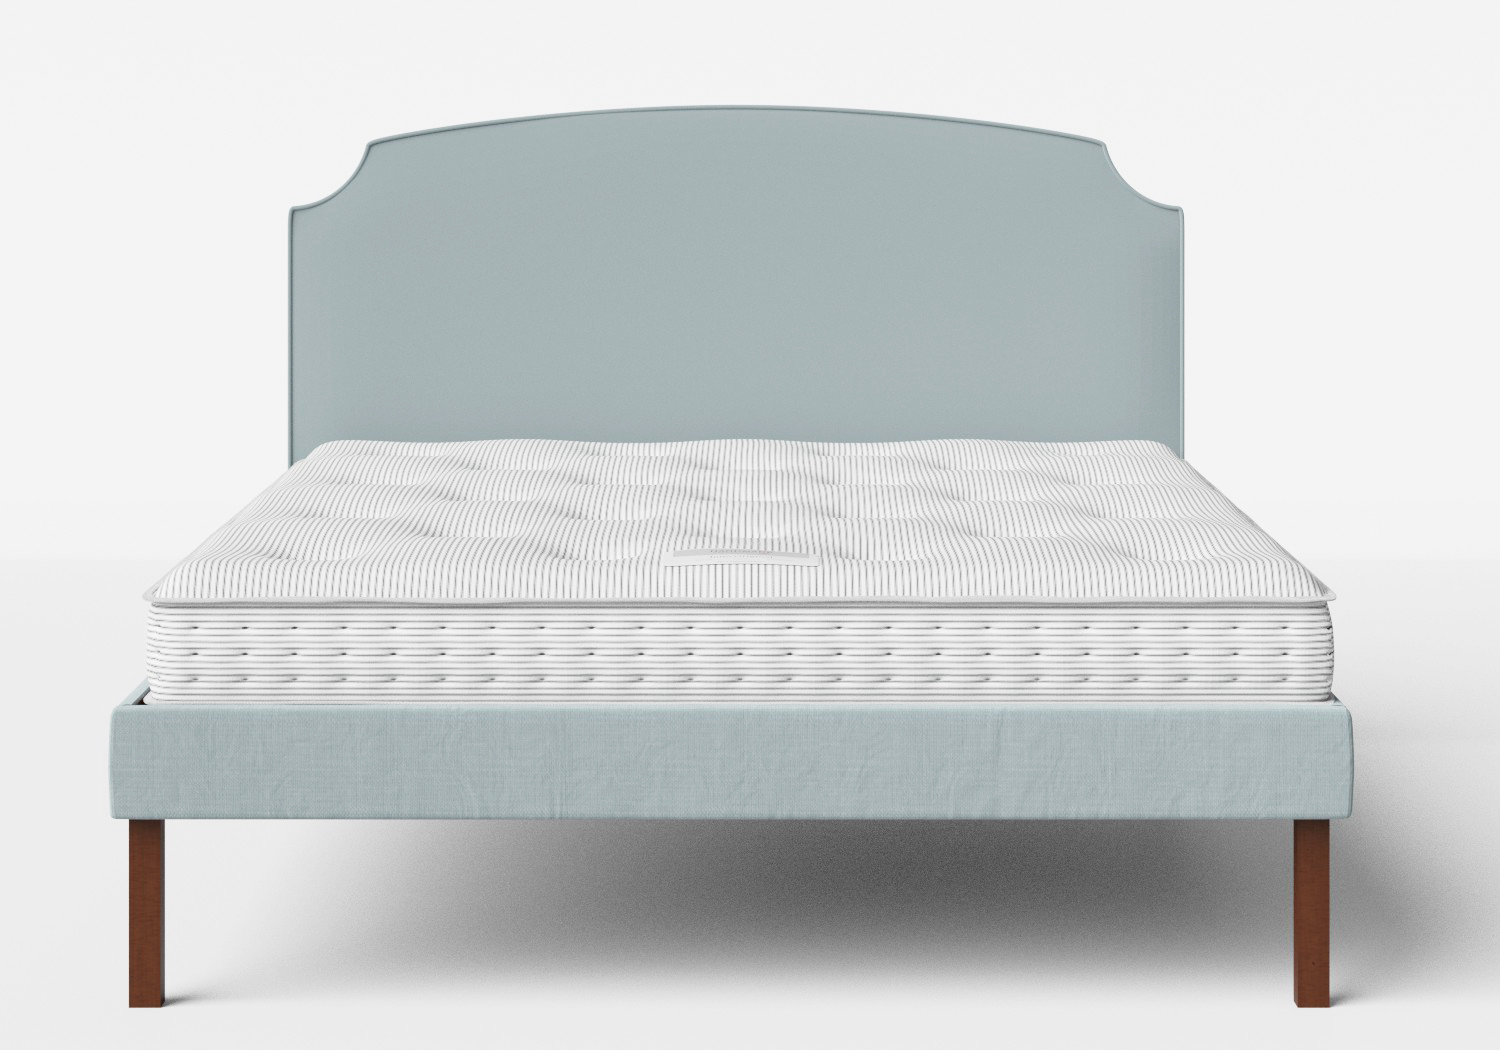 Kobe Upholstered Bed in Wedgewood fabric shown with Juno 1 mattress